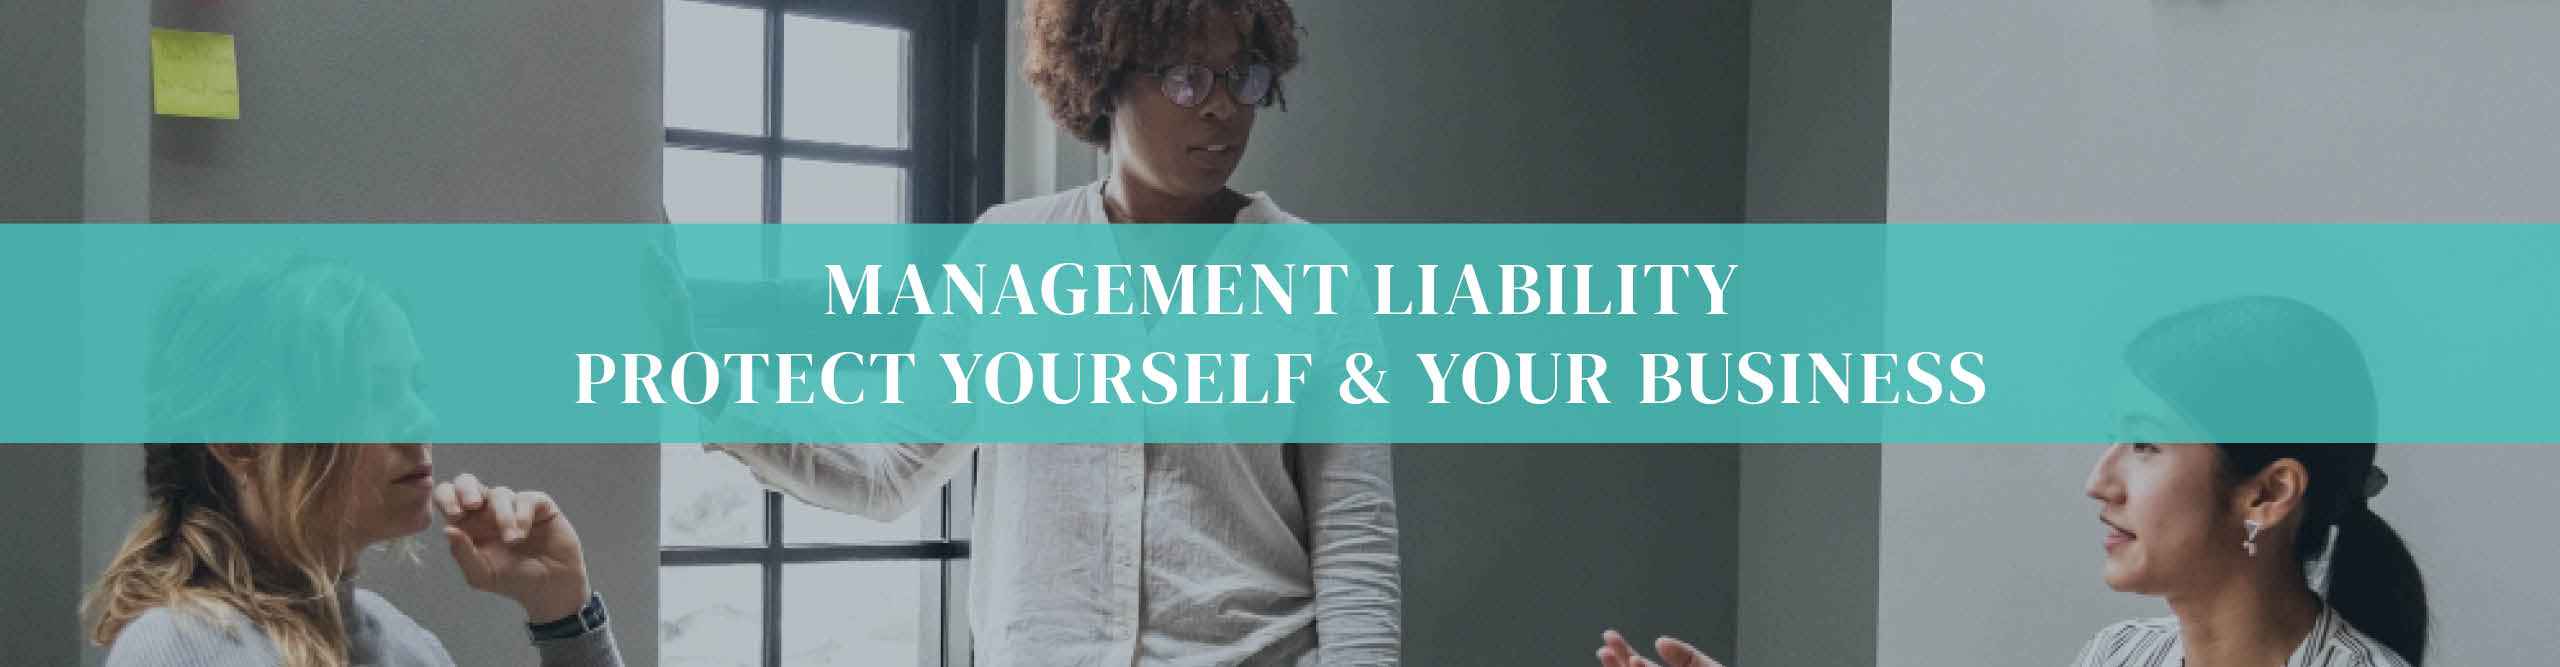 Website-Carousel-Images_ManagementLiability2-4